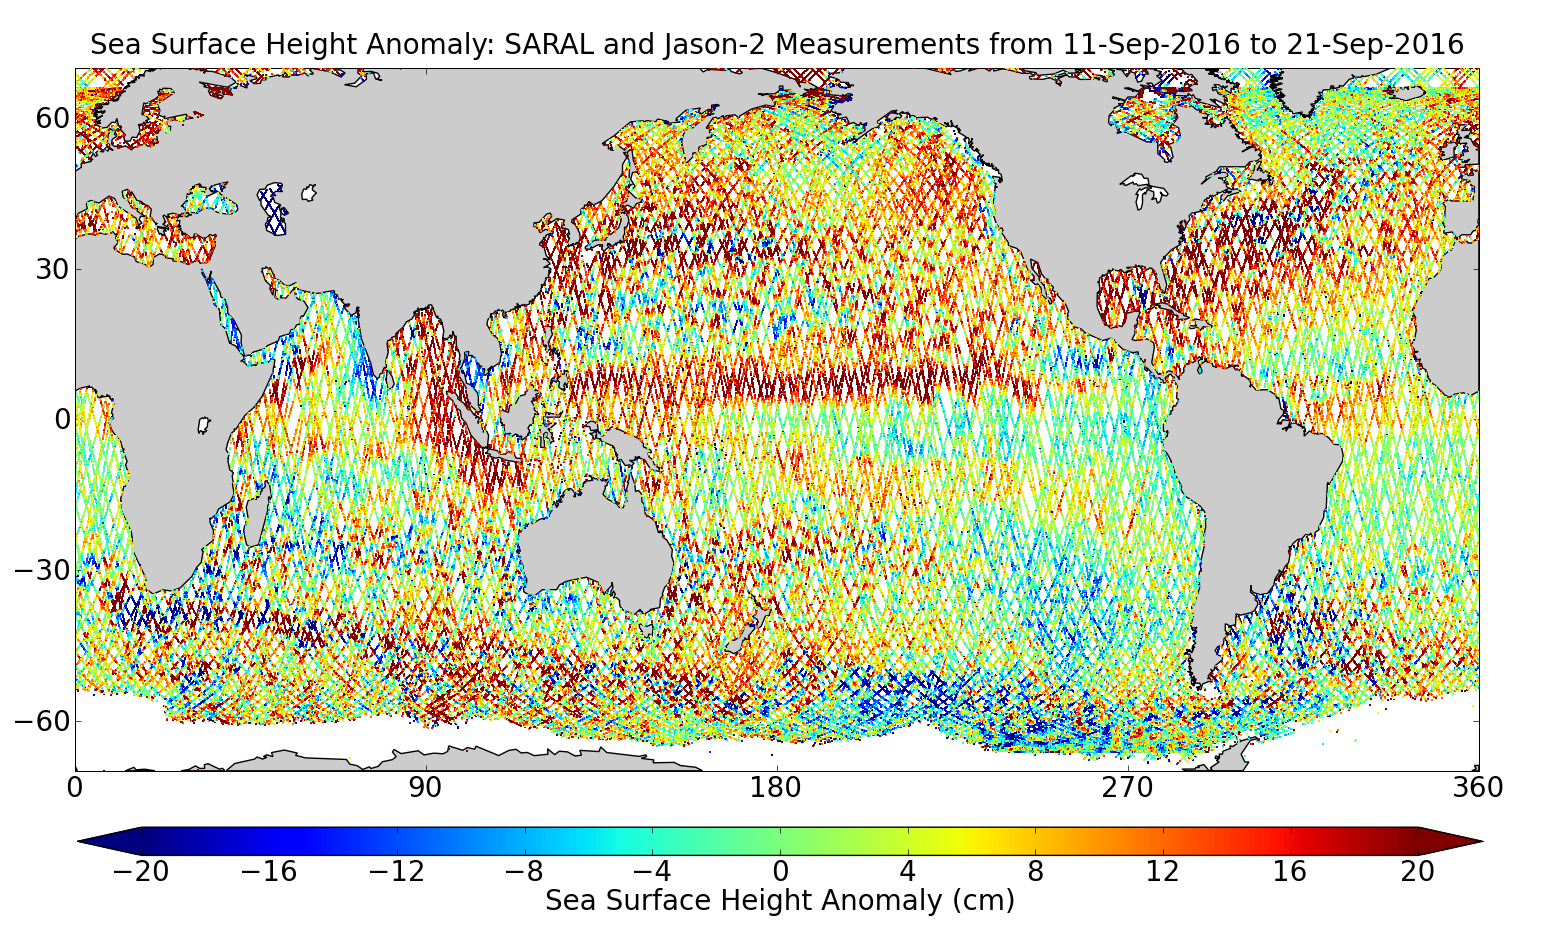 Sea Surface Height Anomaly: SARAL and Jason-2 Measurements from 11-Sep-2016 to 21-Sep-2016